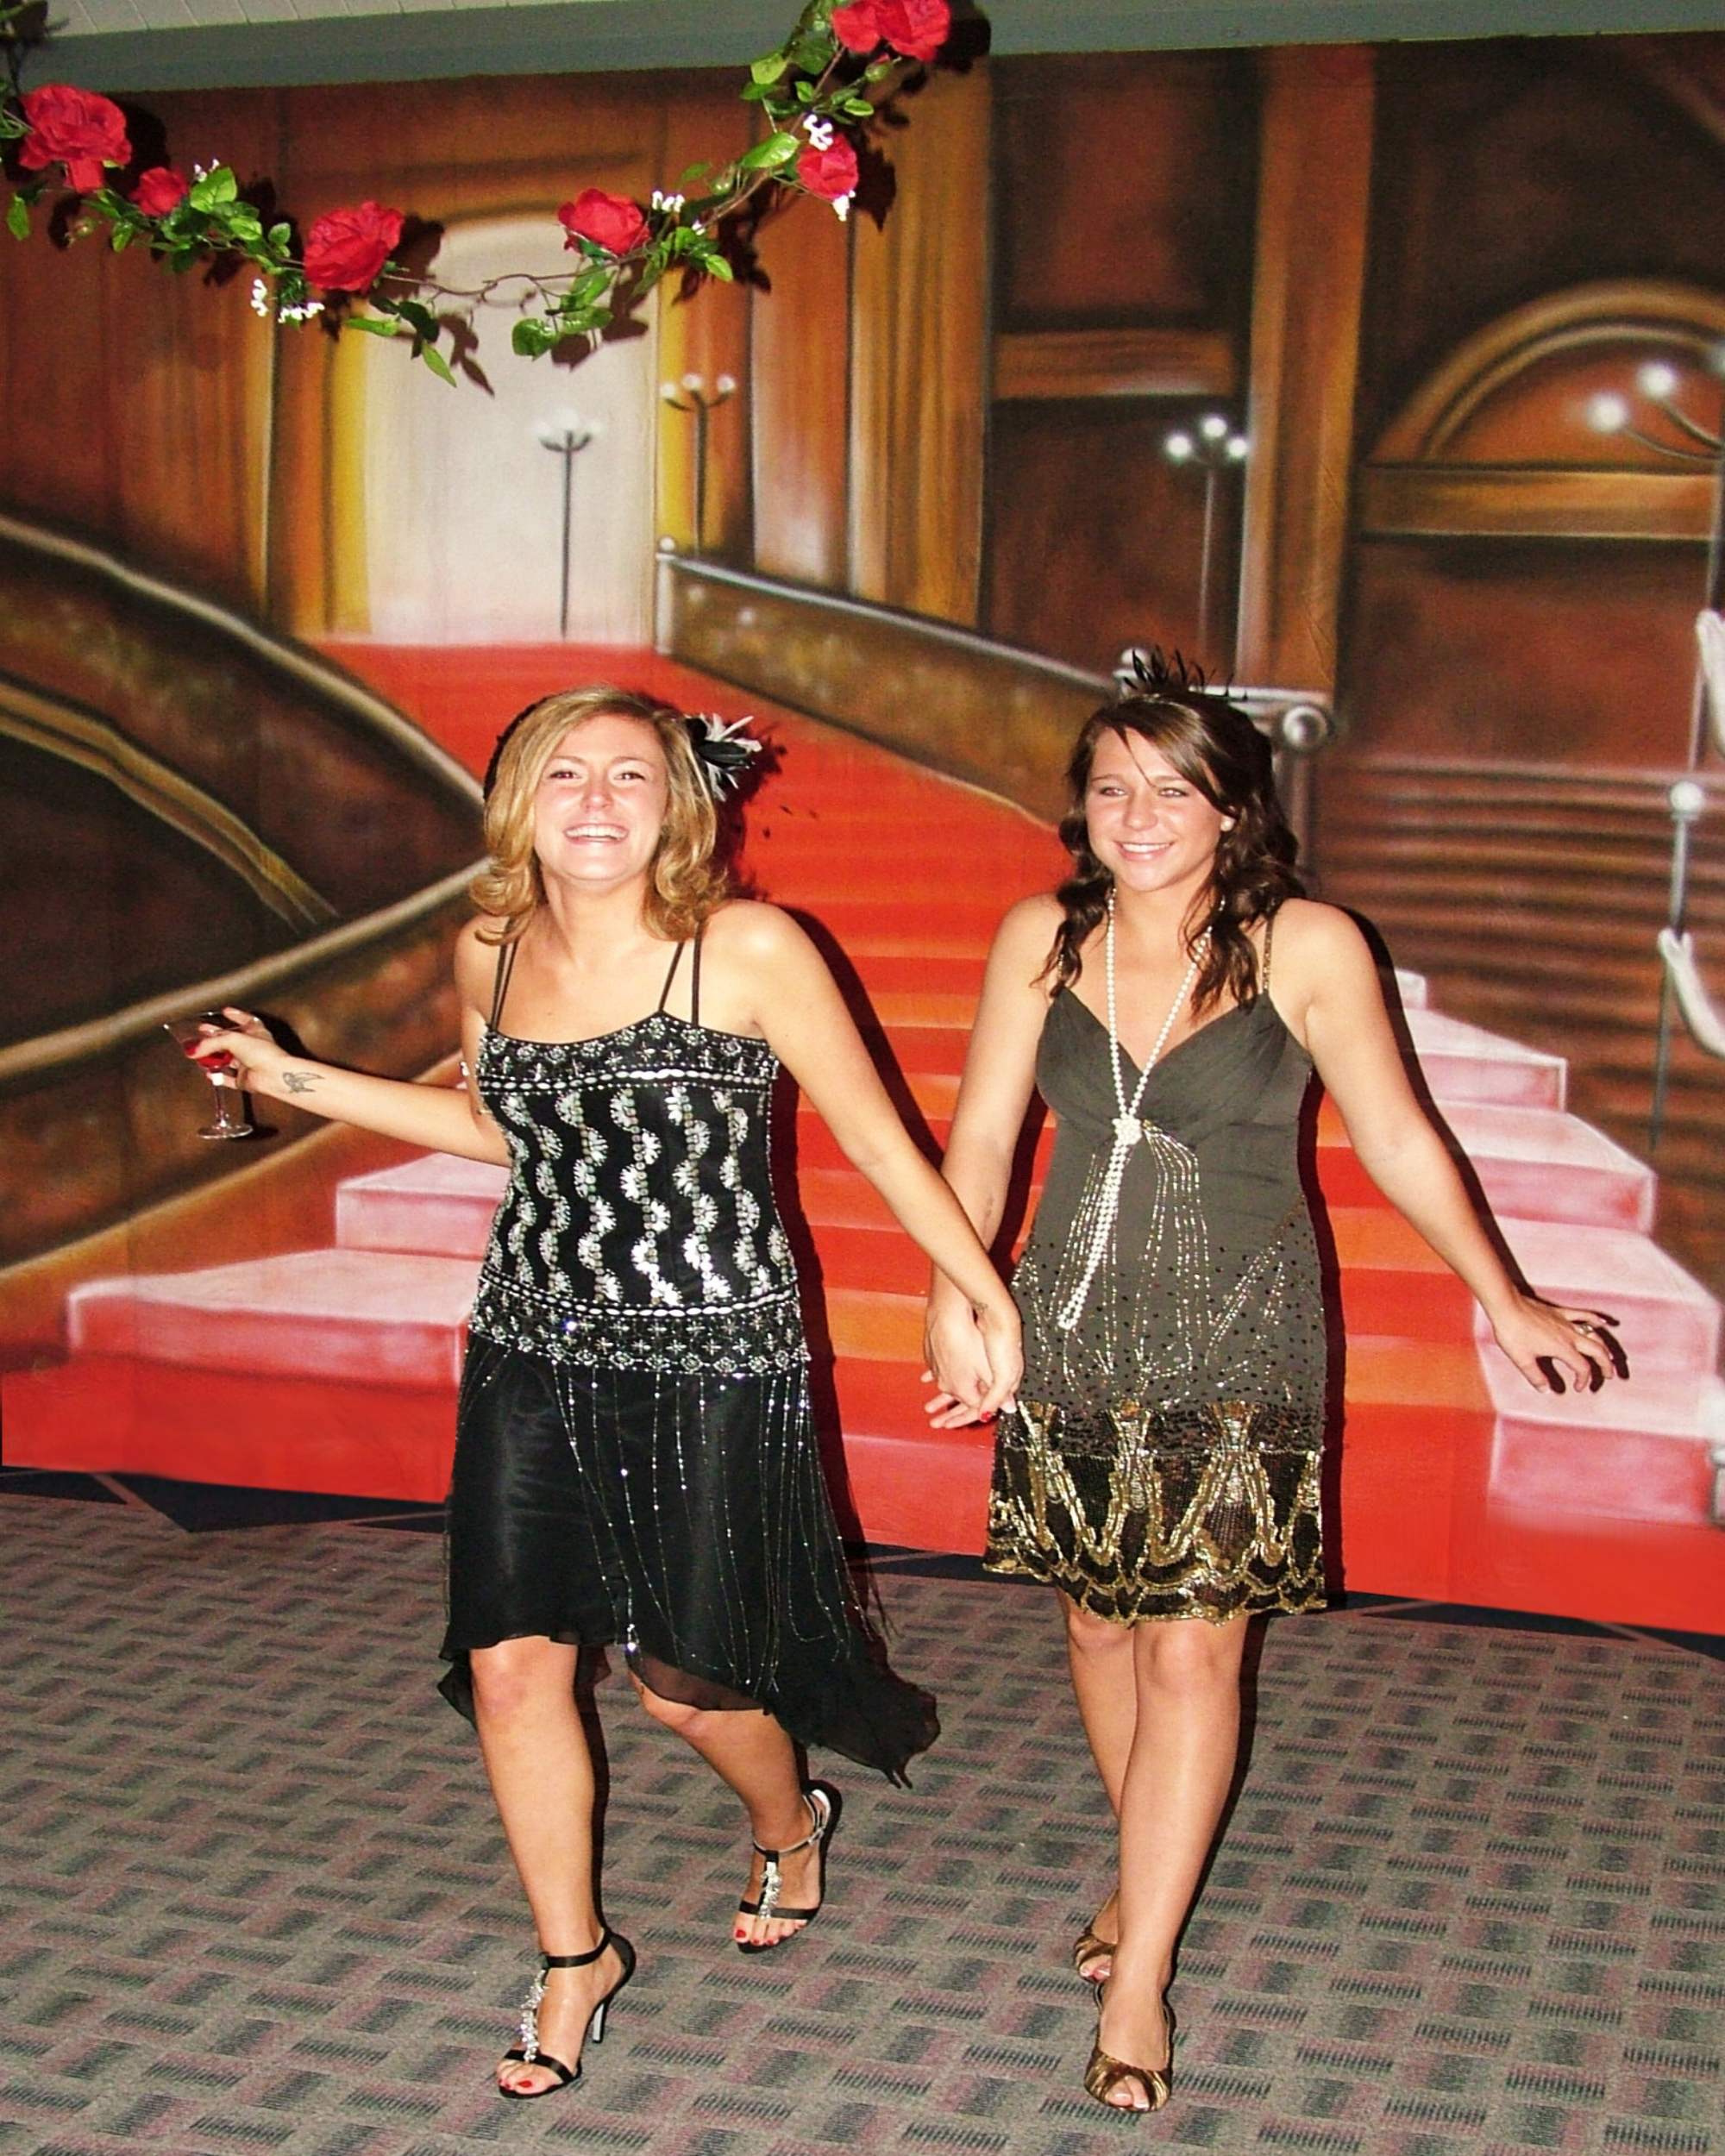 1920s - girls at gatsby event - staircase drop.jpg